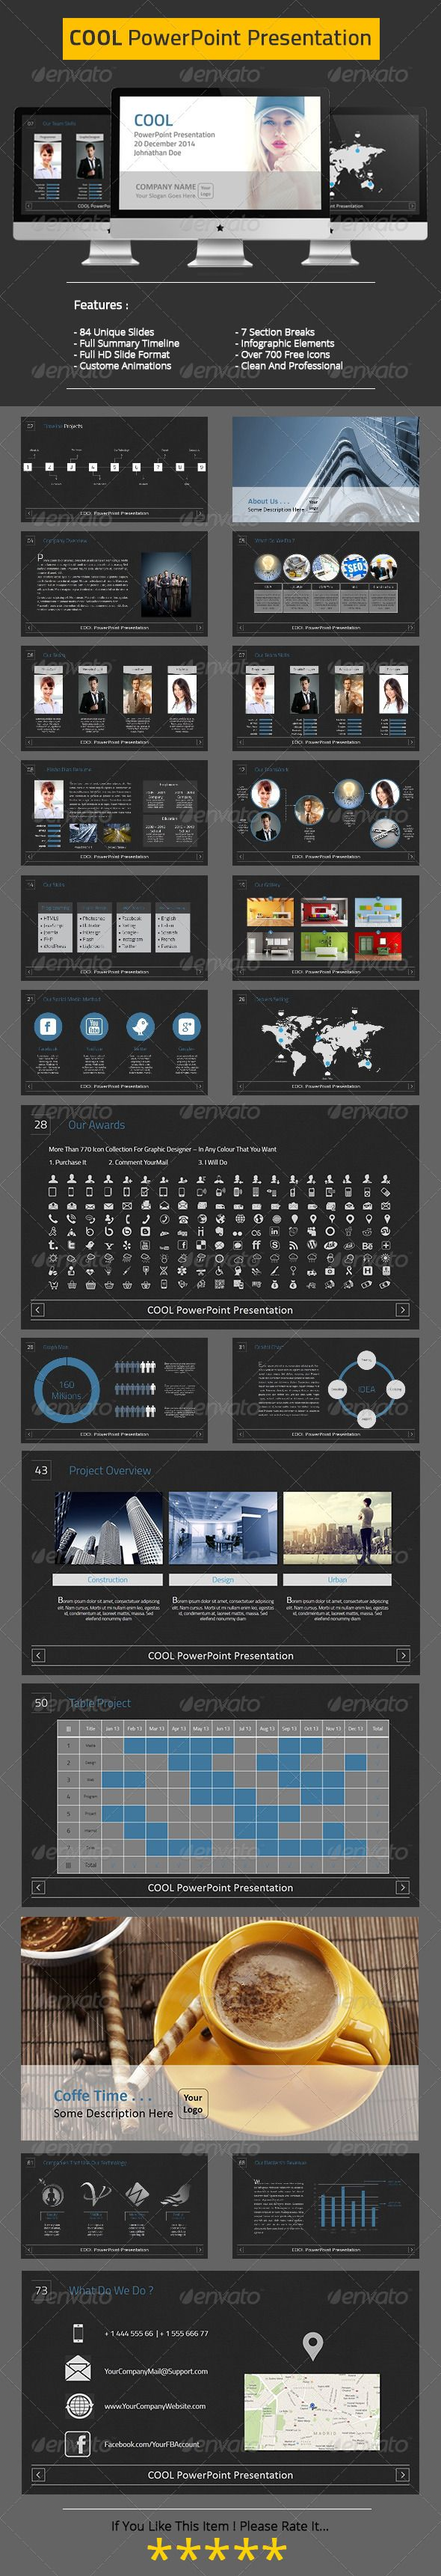 93 best presentation inspiration images on pinterest editorial graphicriver cool powerpoint presentation presentation design layout inspirational presentation design samples visit us at toneelgroepblik Image collections